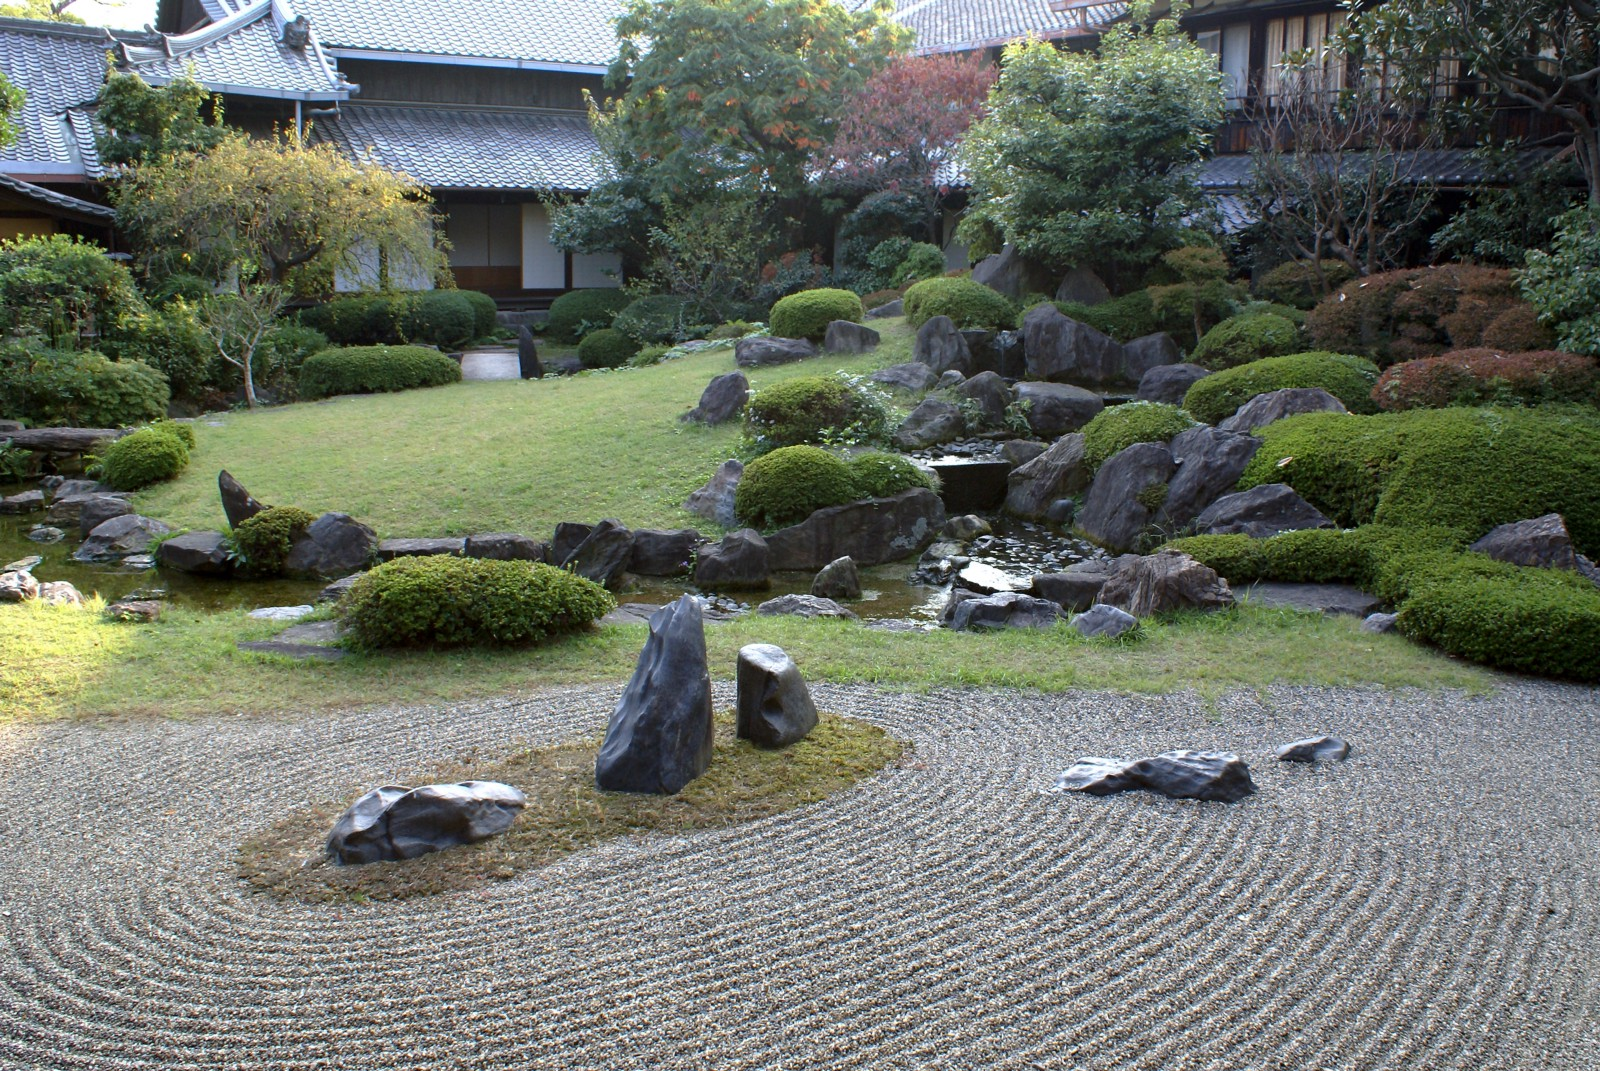 How To Make A Zen Garden In Your Backyard how to create a zen garden in your backyard – bob hobbs – medium